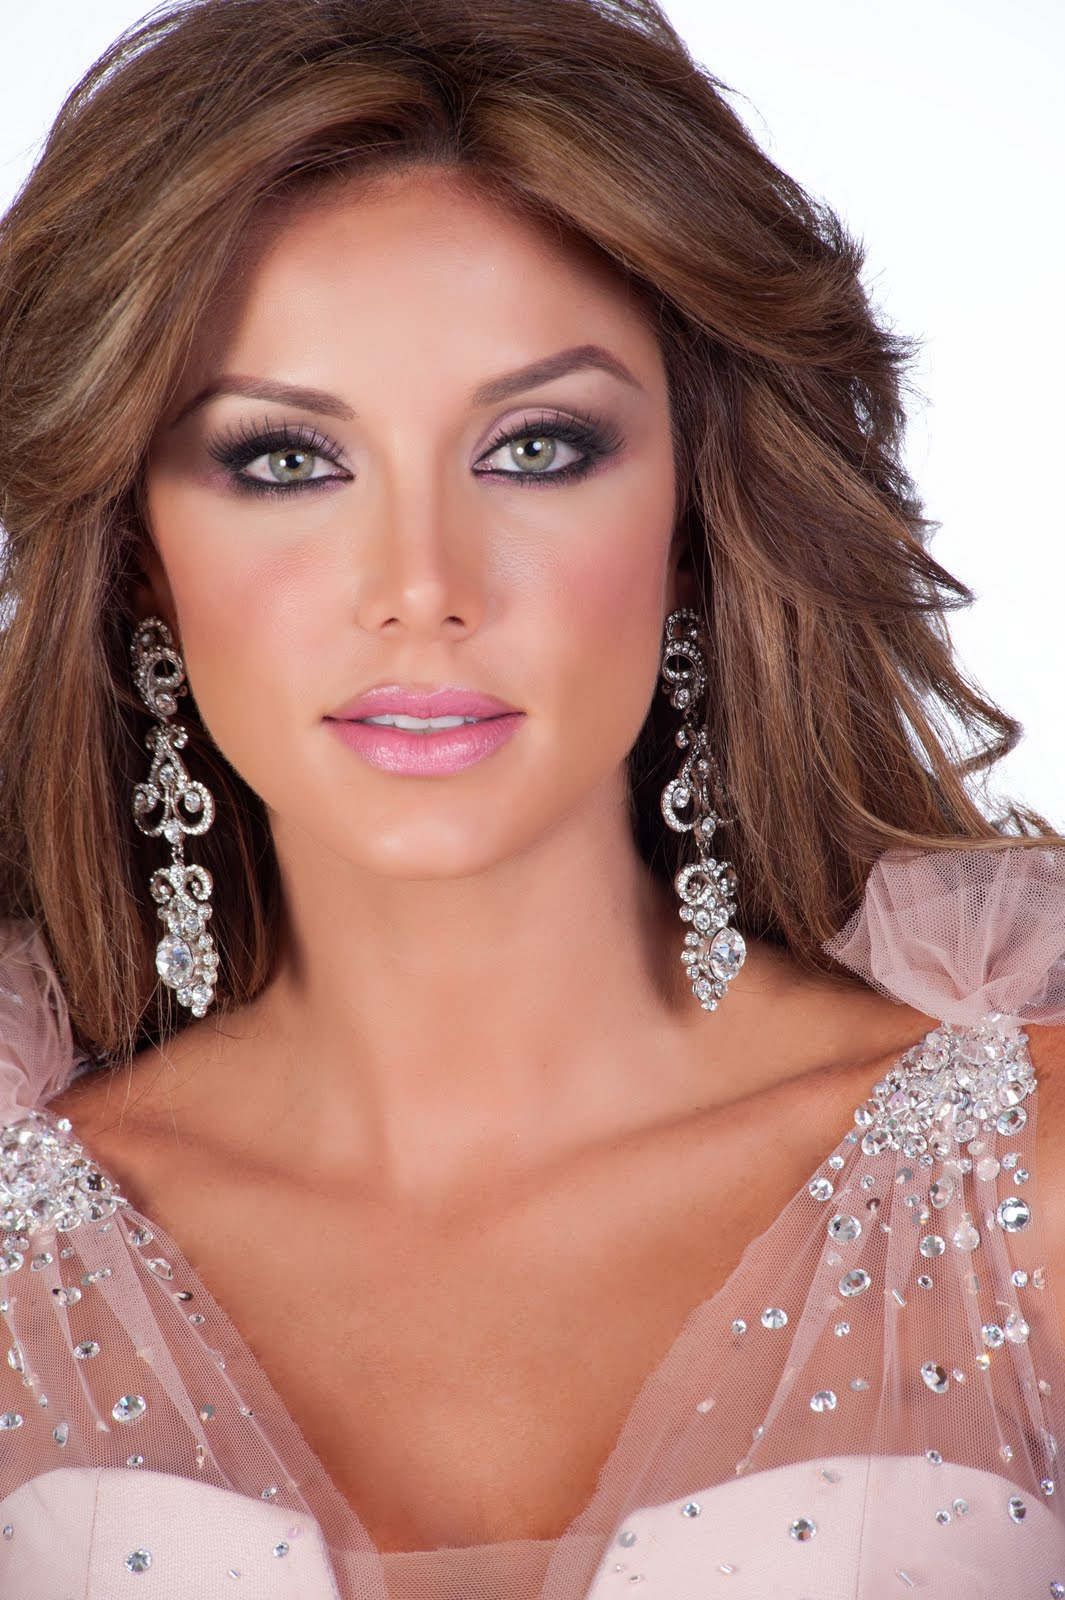 Miss universe 2011 part vi official headshots / swimsuit and gown pics (the rankings 1st-10th)